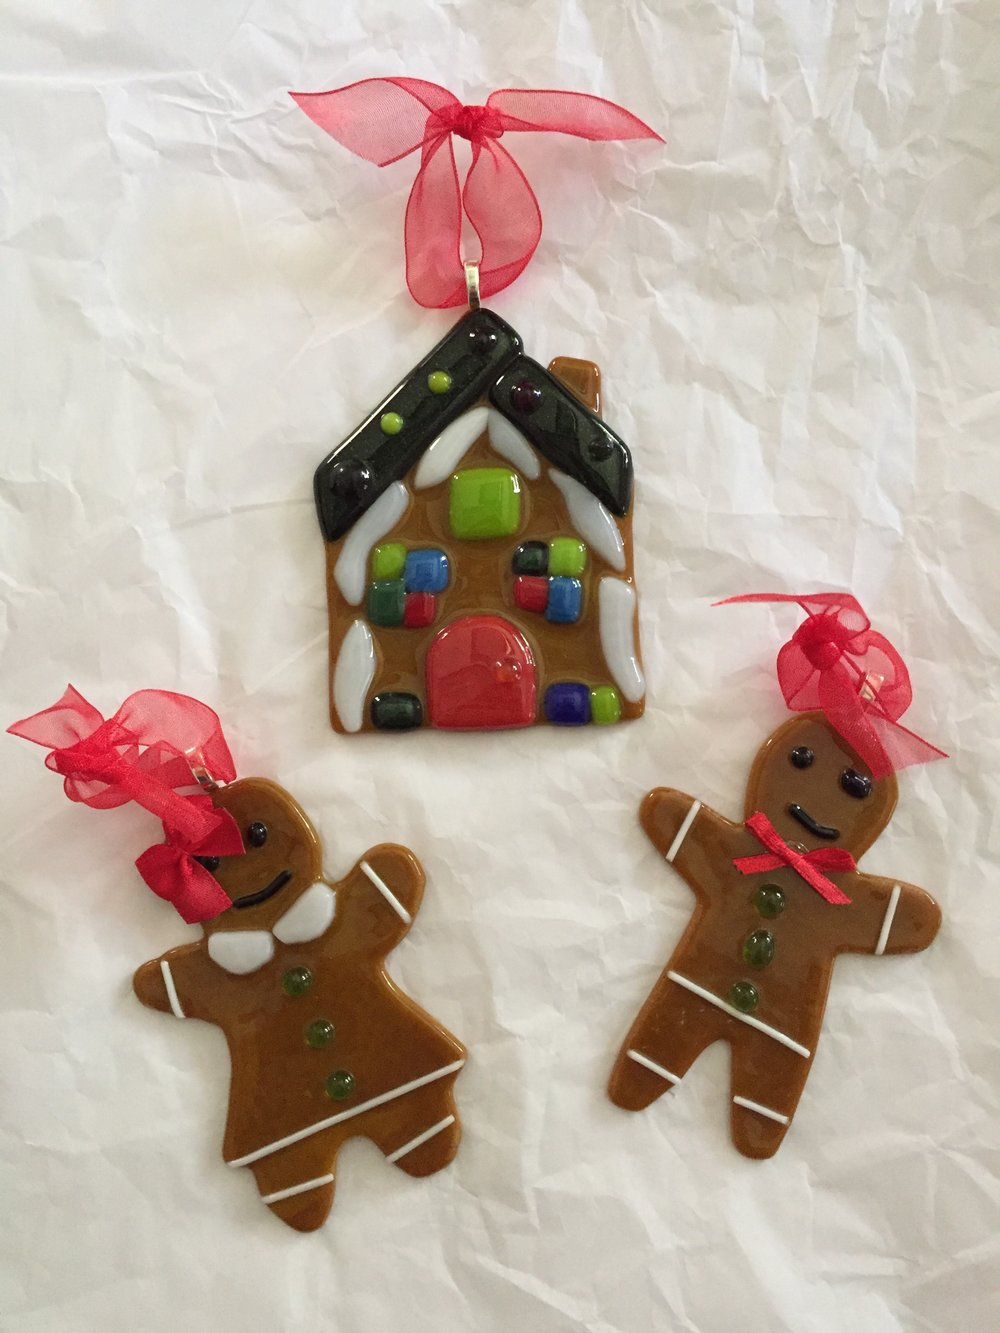 2017 Gingerbread Ornaments 2.jpg